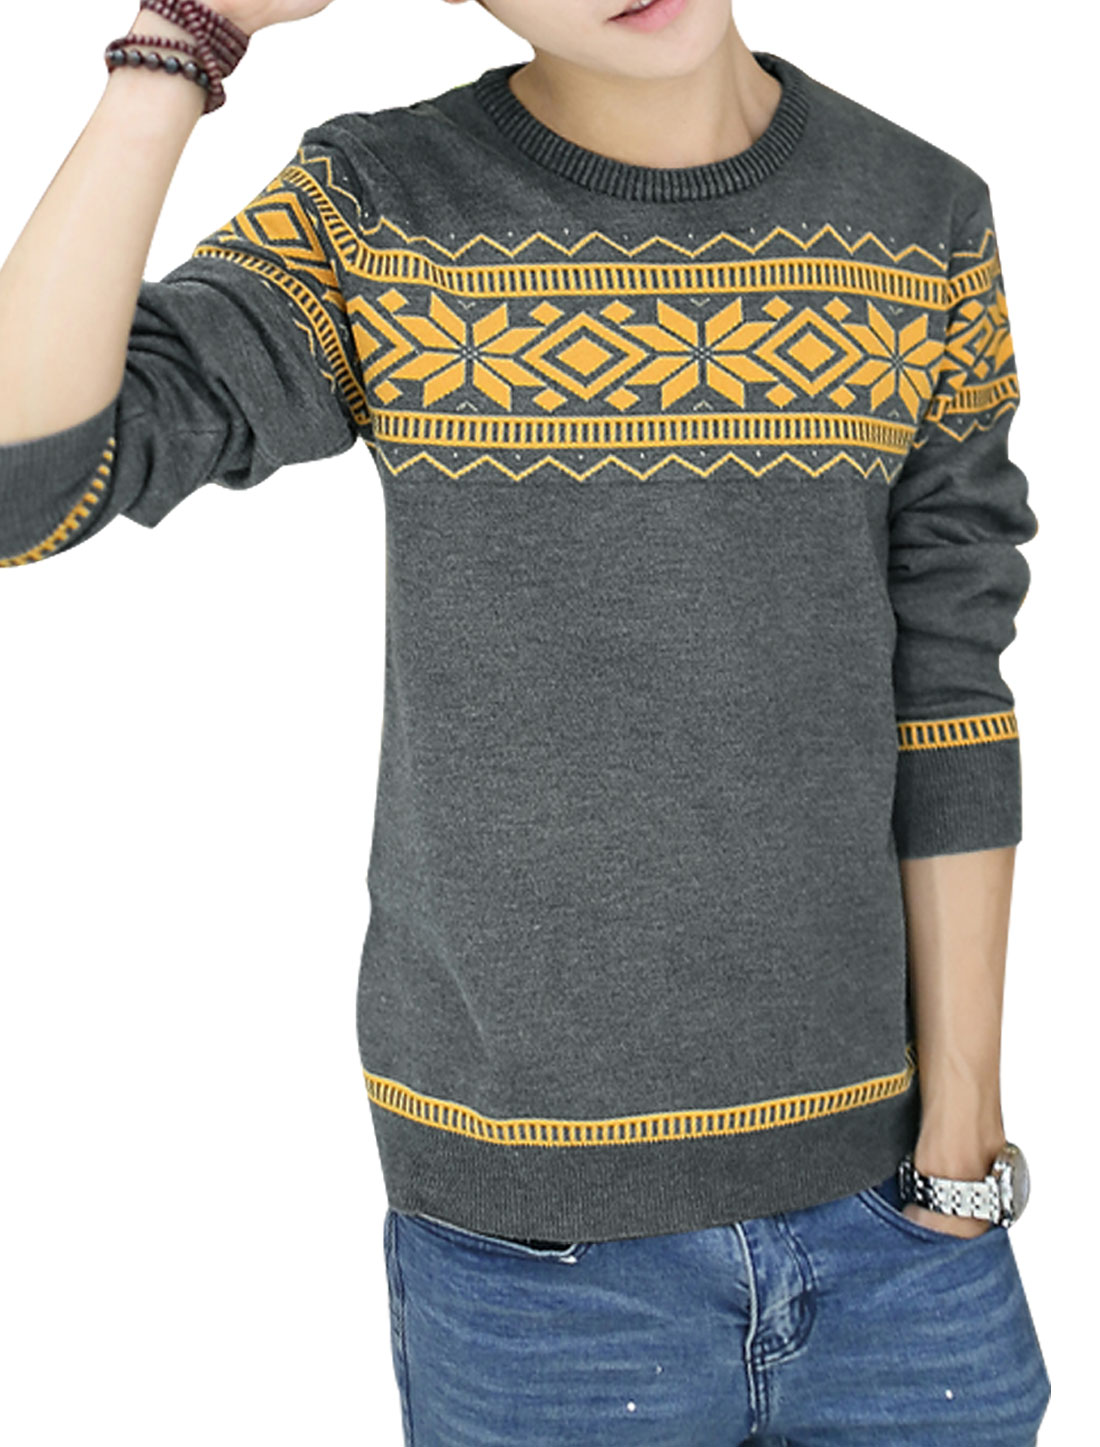 Men Crew Neck Geometric Zig-Zag Pattern Long Sleeve Knit Shirt Gray M